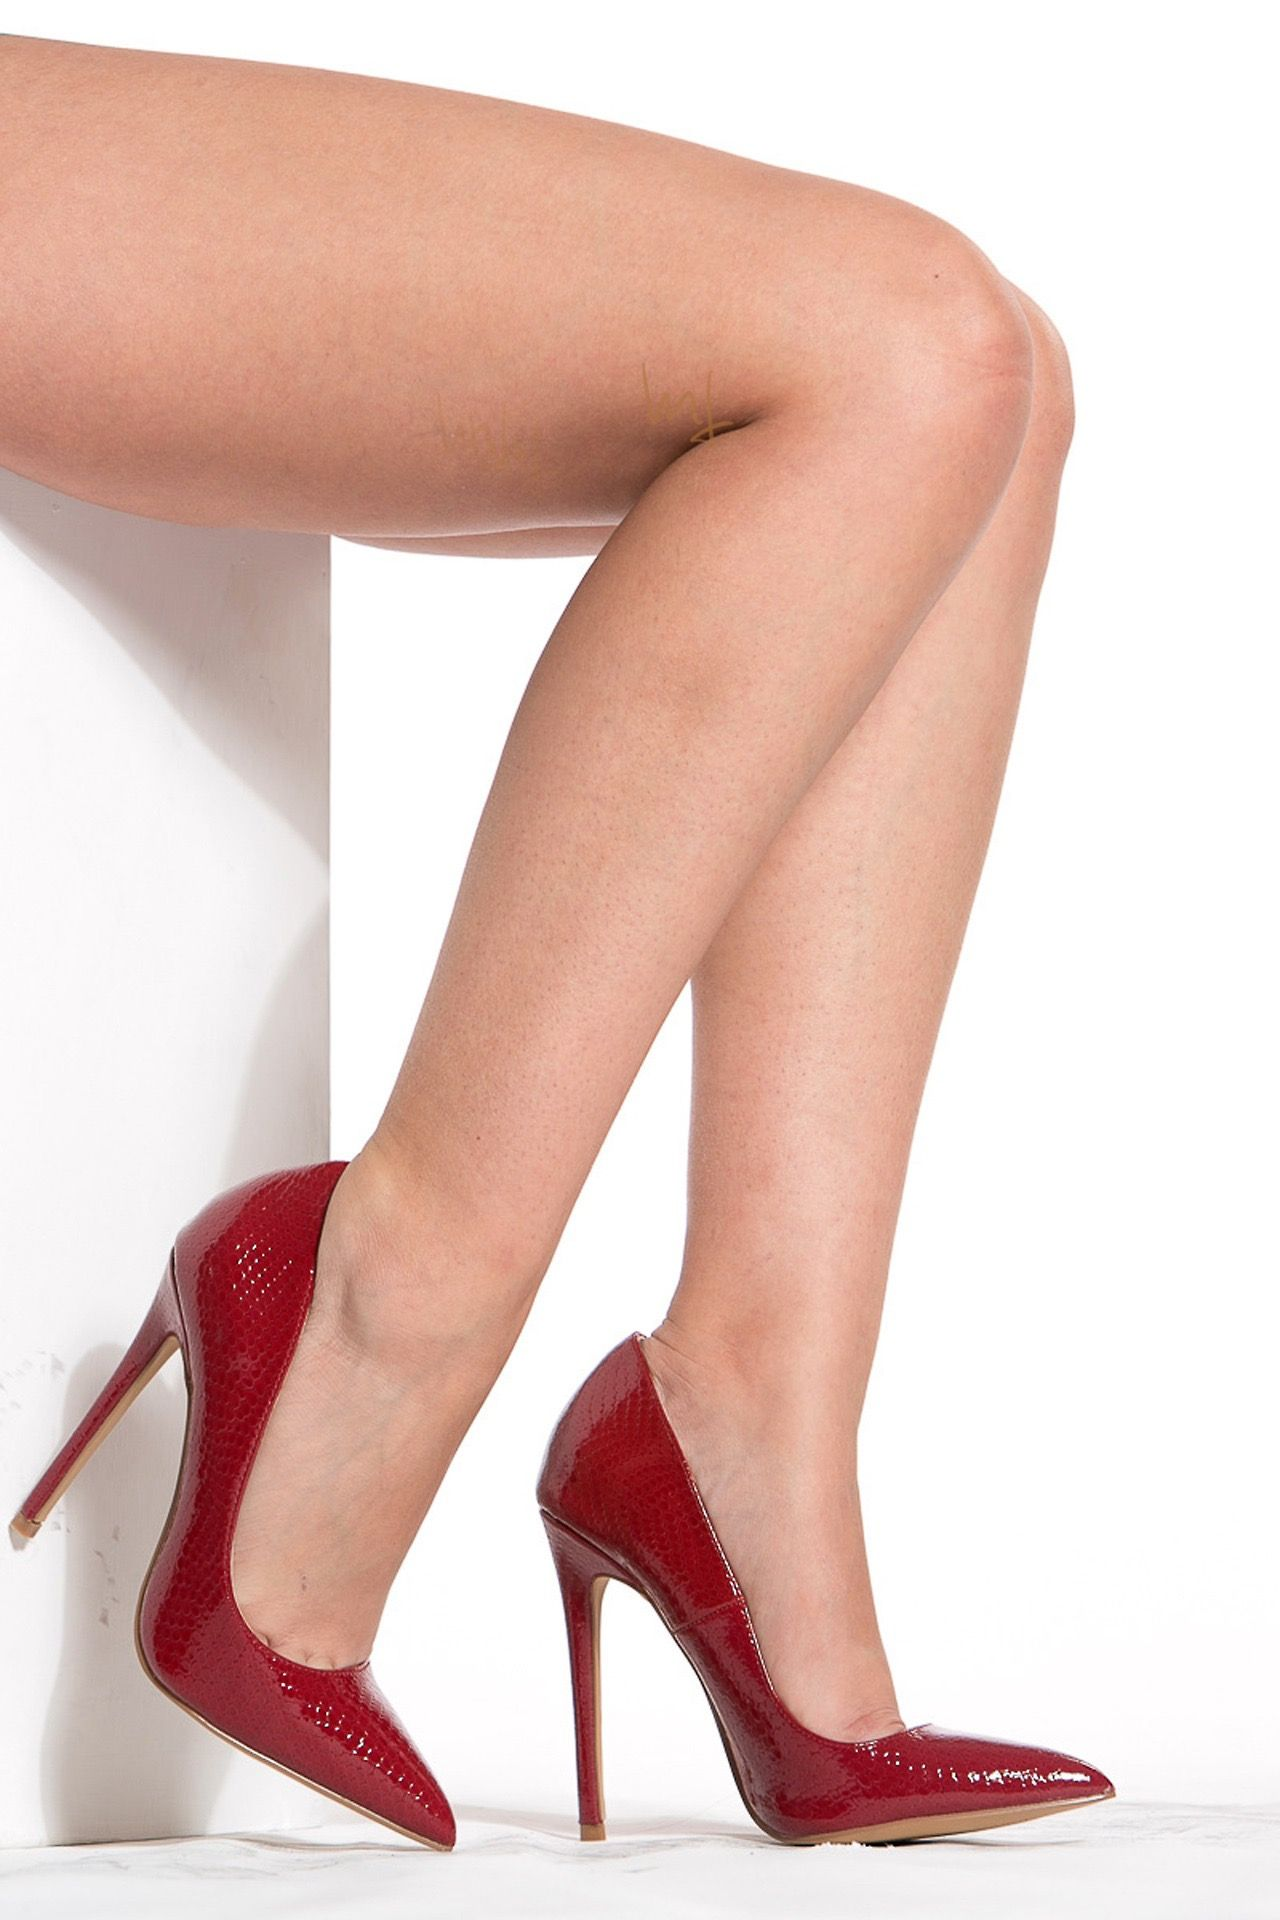 Pin Op Jsph Pair Dumas Legs Van HeelsStiletto Nice Of Shoes thQrds